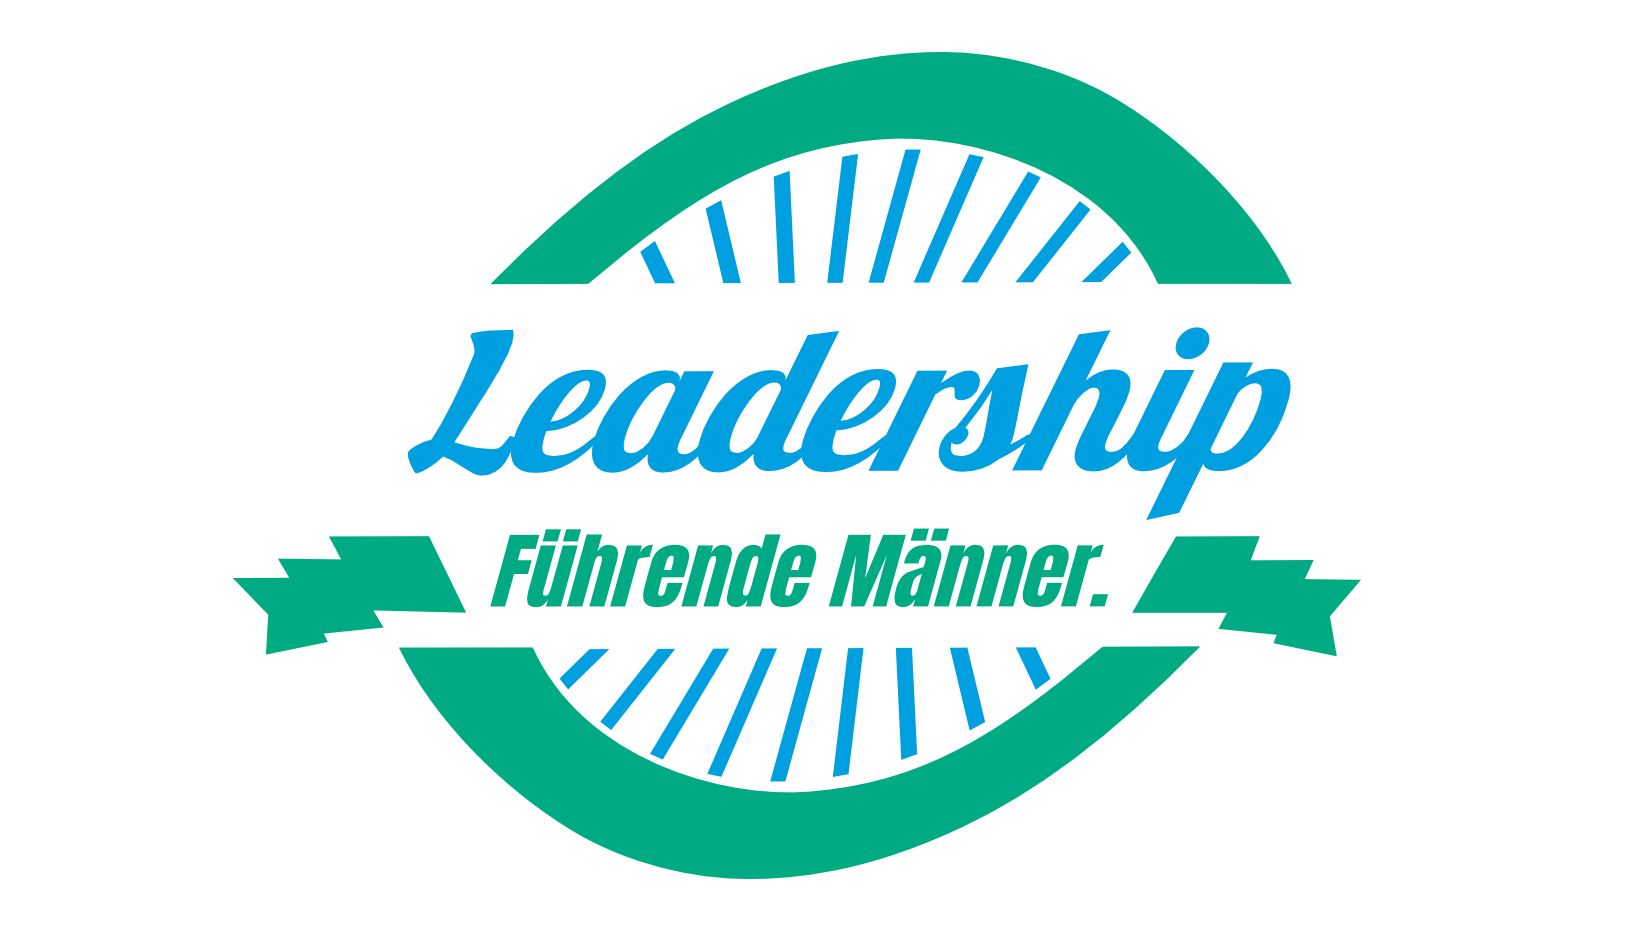 Post-Picture-WS-Leadership-fuehrende-Maenner